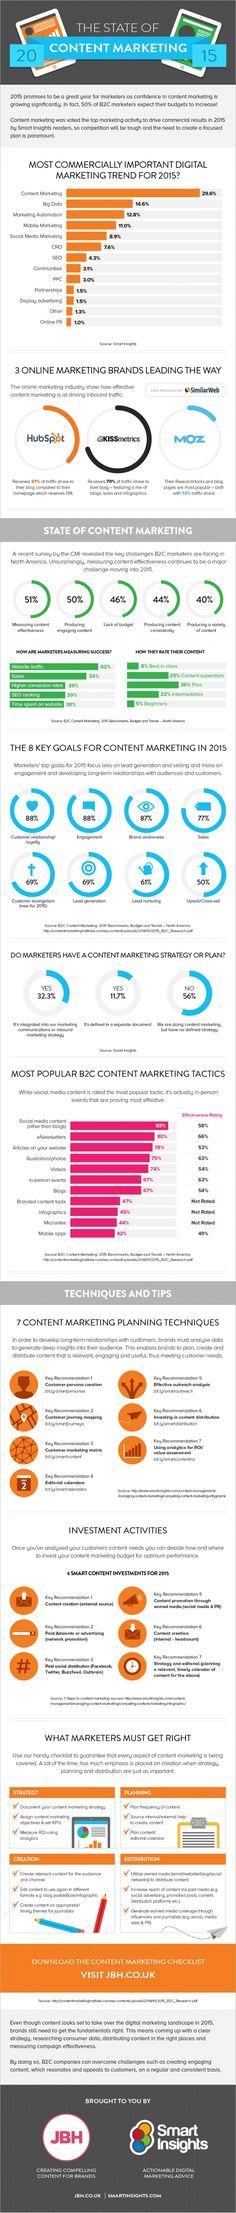 http://contently.com/strategist/2015/04/21/infographic-2015s-biggest-content-marketing-trends/